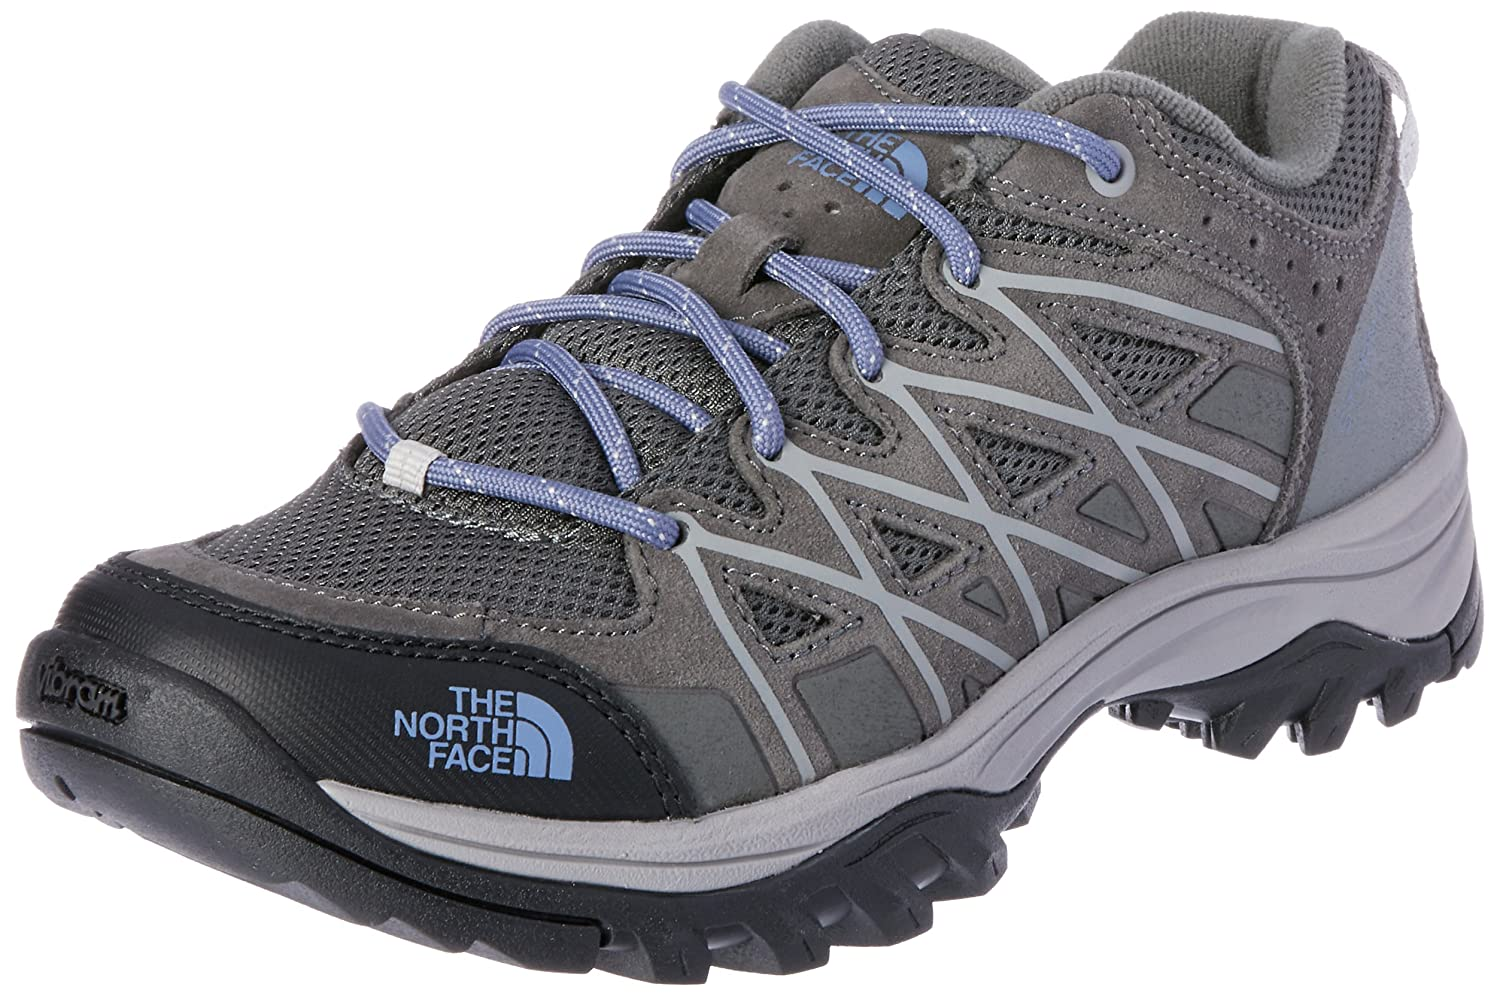 The North Face 8.5|Dark Womens Storm III B01HHAHXOG 8.5|Dark Face Gull Grey & Marlin Blue cd3068